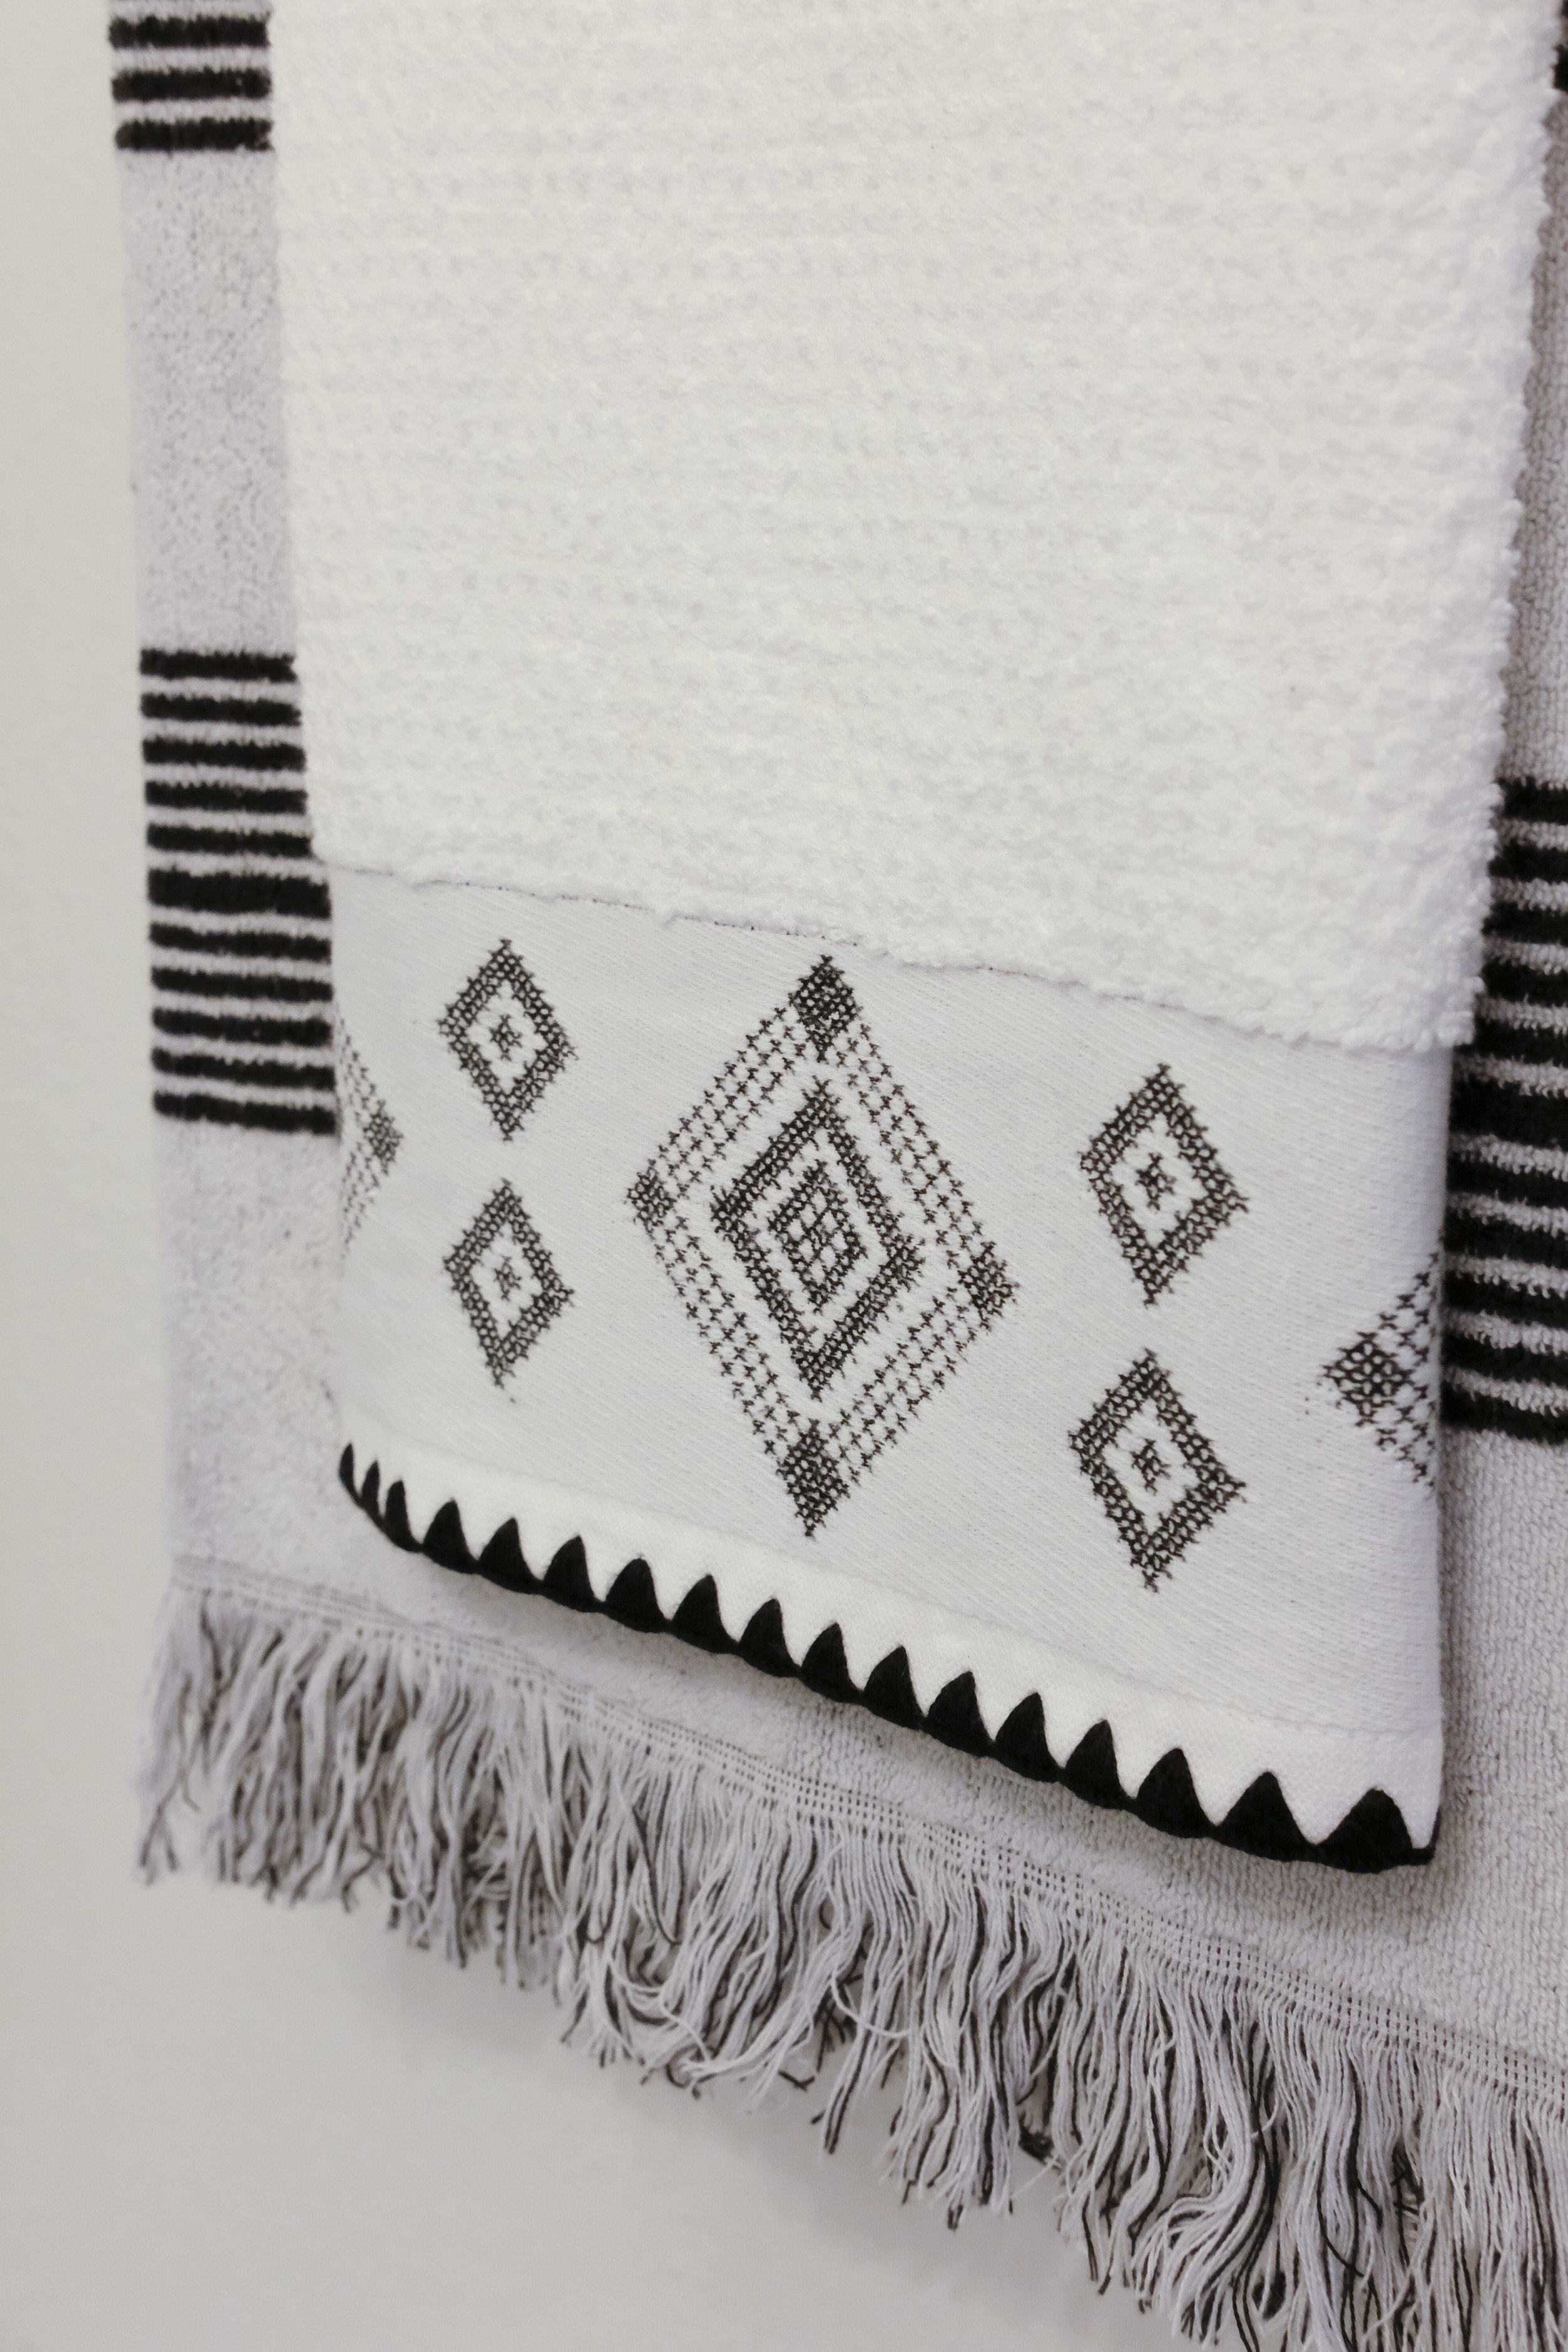 DIY painted moroccan tile_black white moroccan tile_cutting edge stencil augusta_black and white bathroom_03.jpg